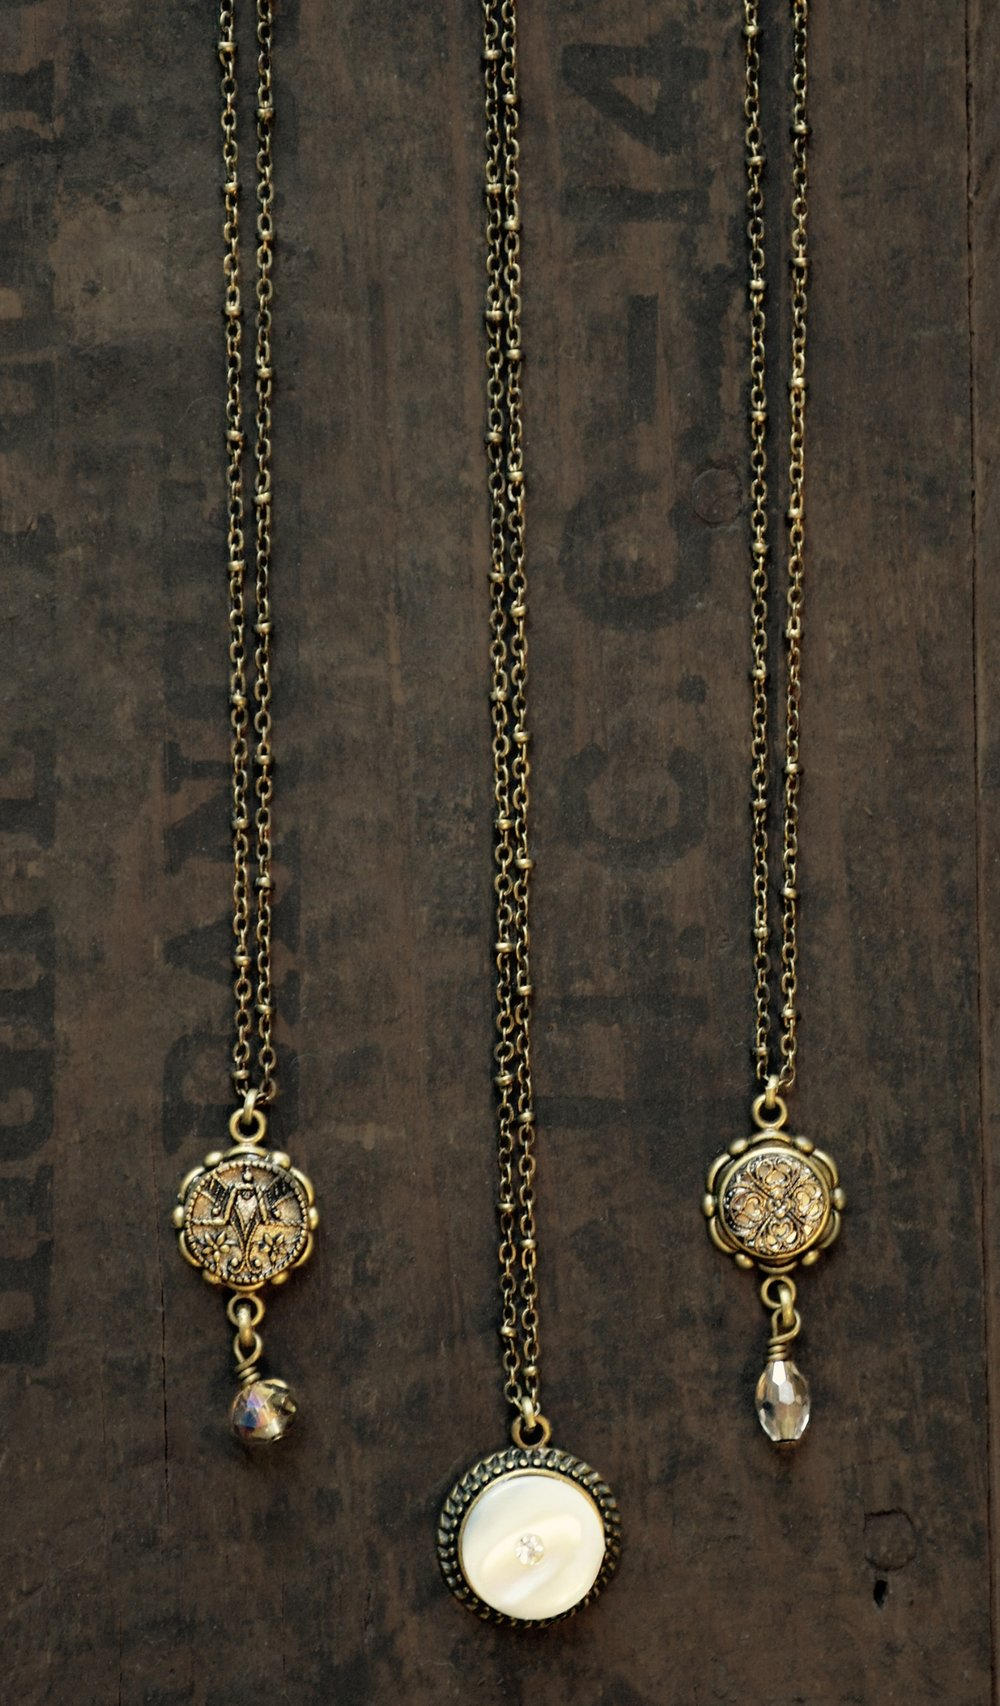 KROSS_Necklace8.jpg